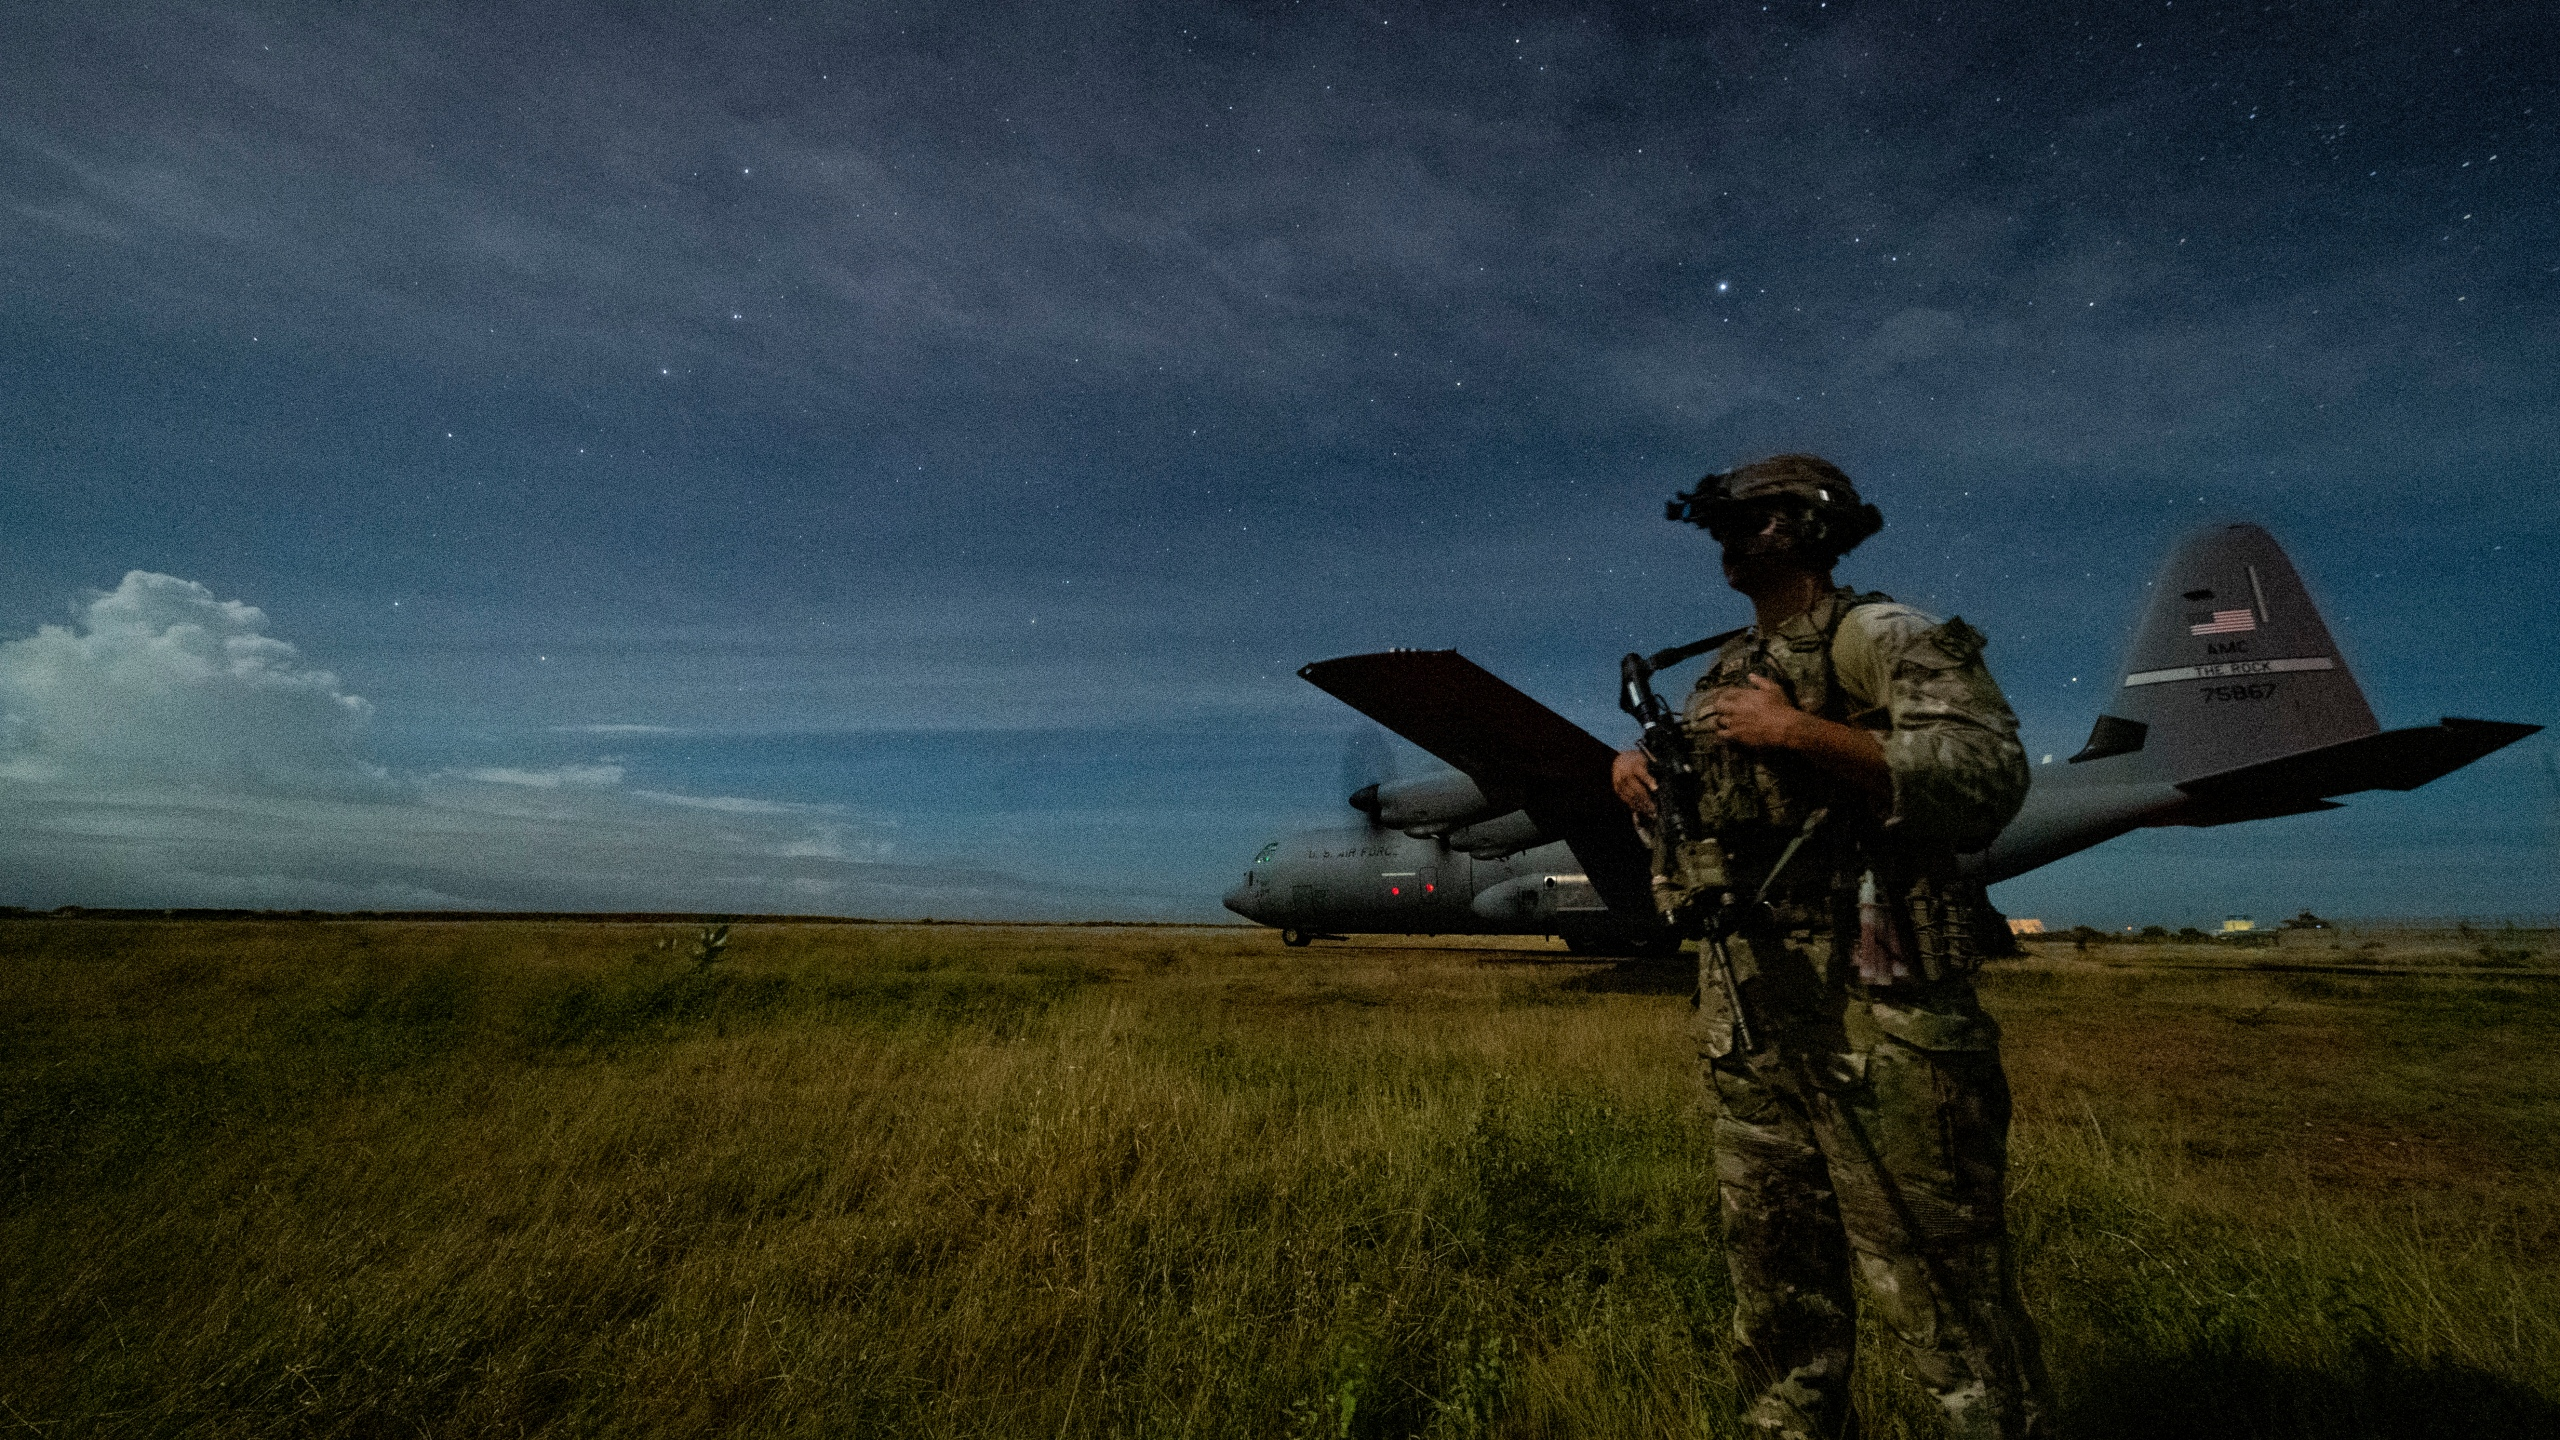 U.S. Army Spc. Kevin Martin, junior sniper, assigned to the 1-186th Infantry Battalion, Task Force Guardian, Combined Joint Task Force - Horn of Africa, provides security for a 75th Expeditionary Airlift Squadron (EAS) C-130J Super Hercules during unloading operations at an unidentified location in Somalia Sunday, June 28, 2020. (Tech. Sgt. Christopher Ruano/Combined Joint Task Force - Horn of Africa via AP)